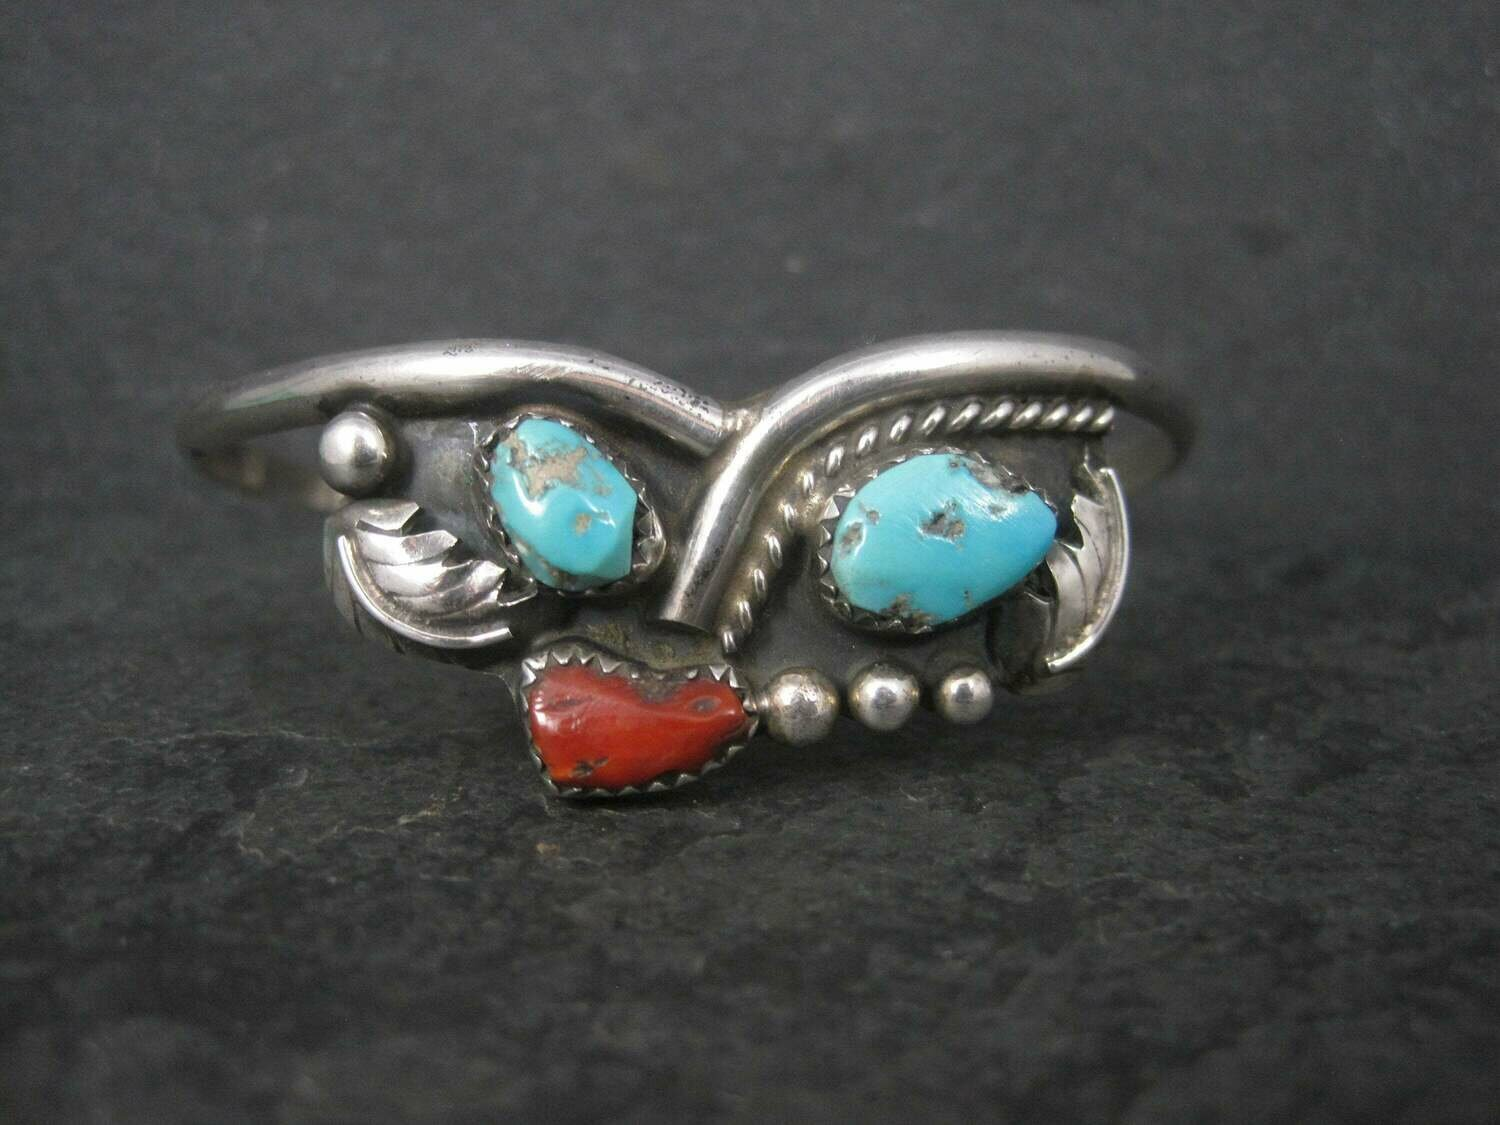 Vintage Southwestern Sterling Turquoise Coral Cuff Bracelet 6.25 Inches